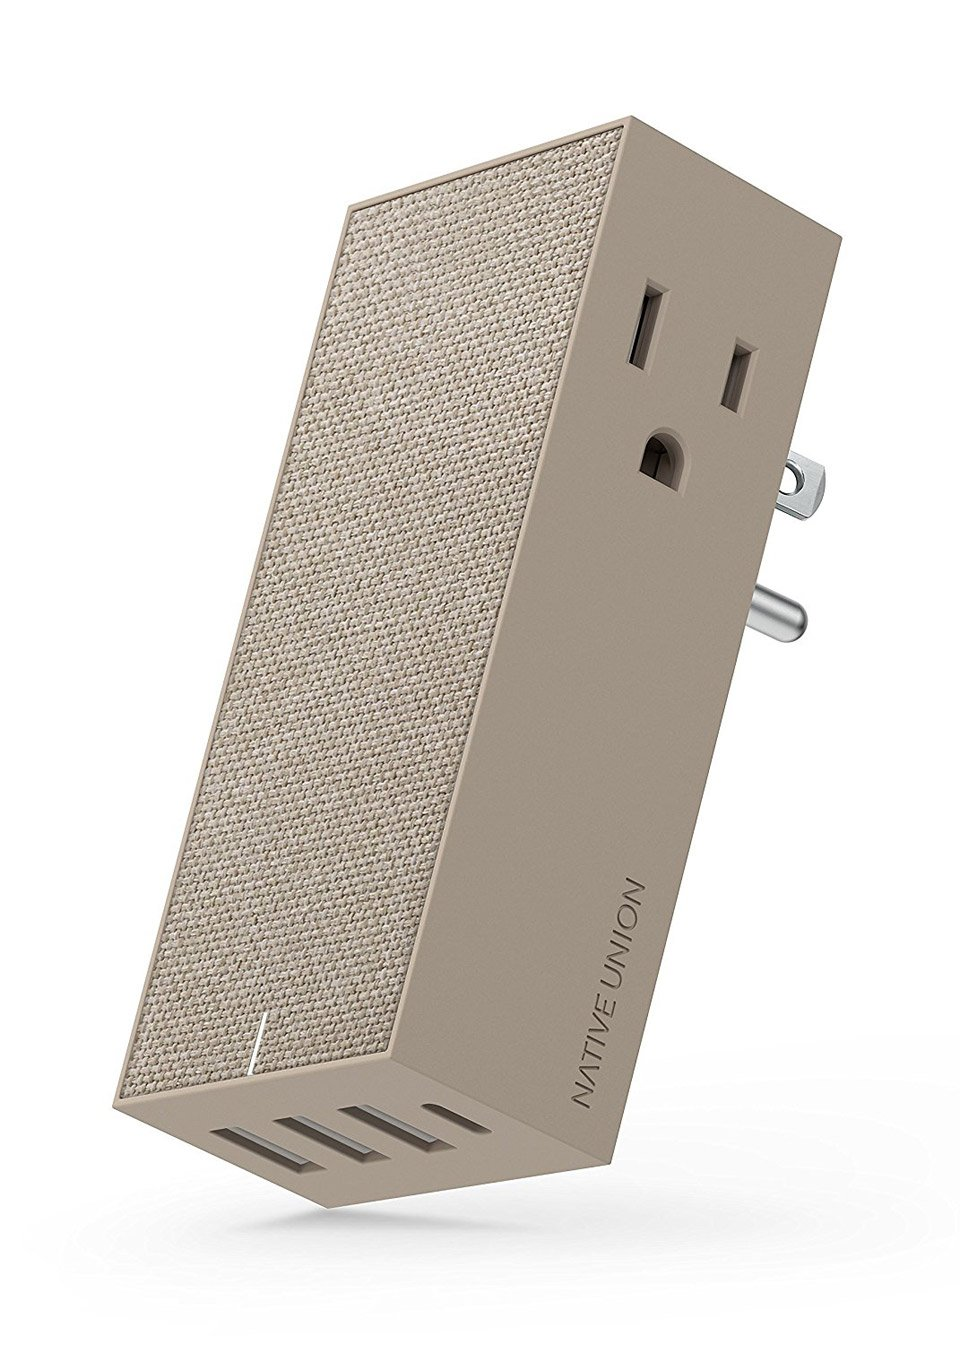 Native Union Smart Hub USB Charger